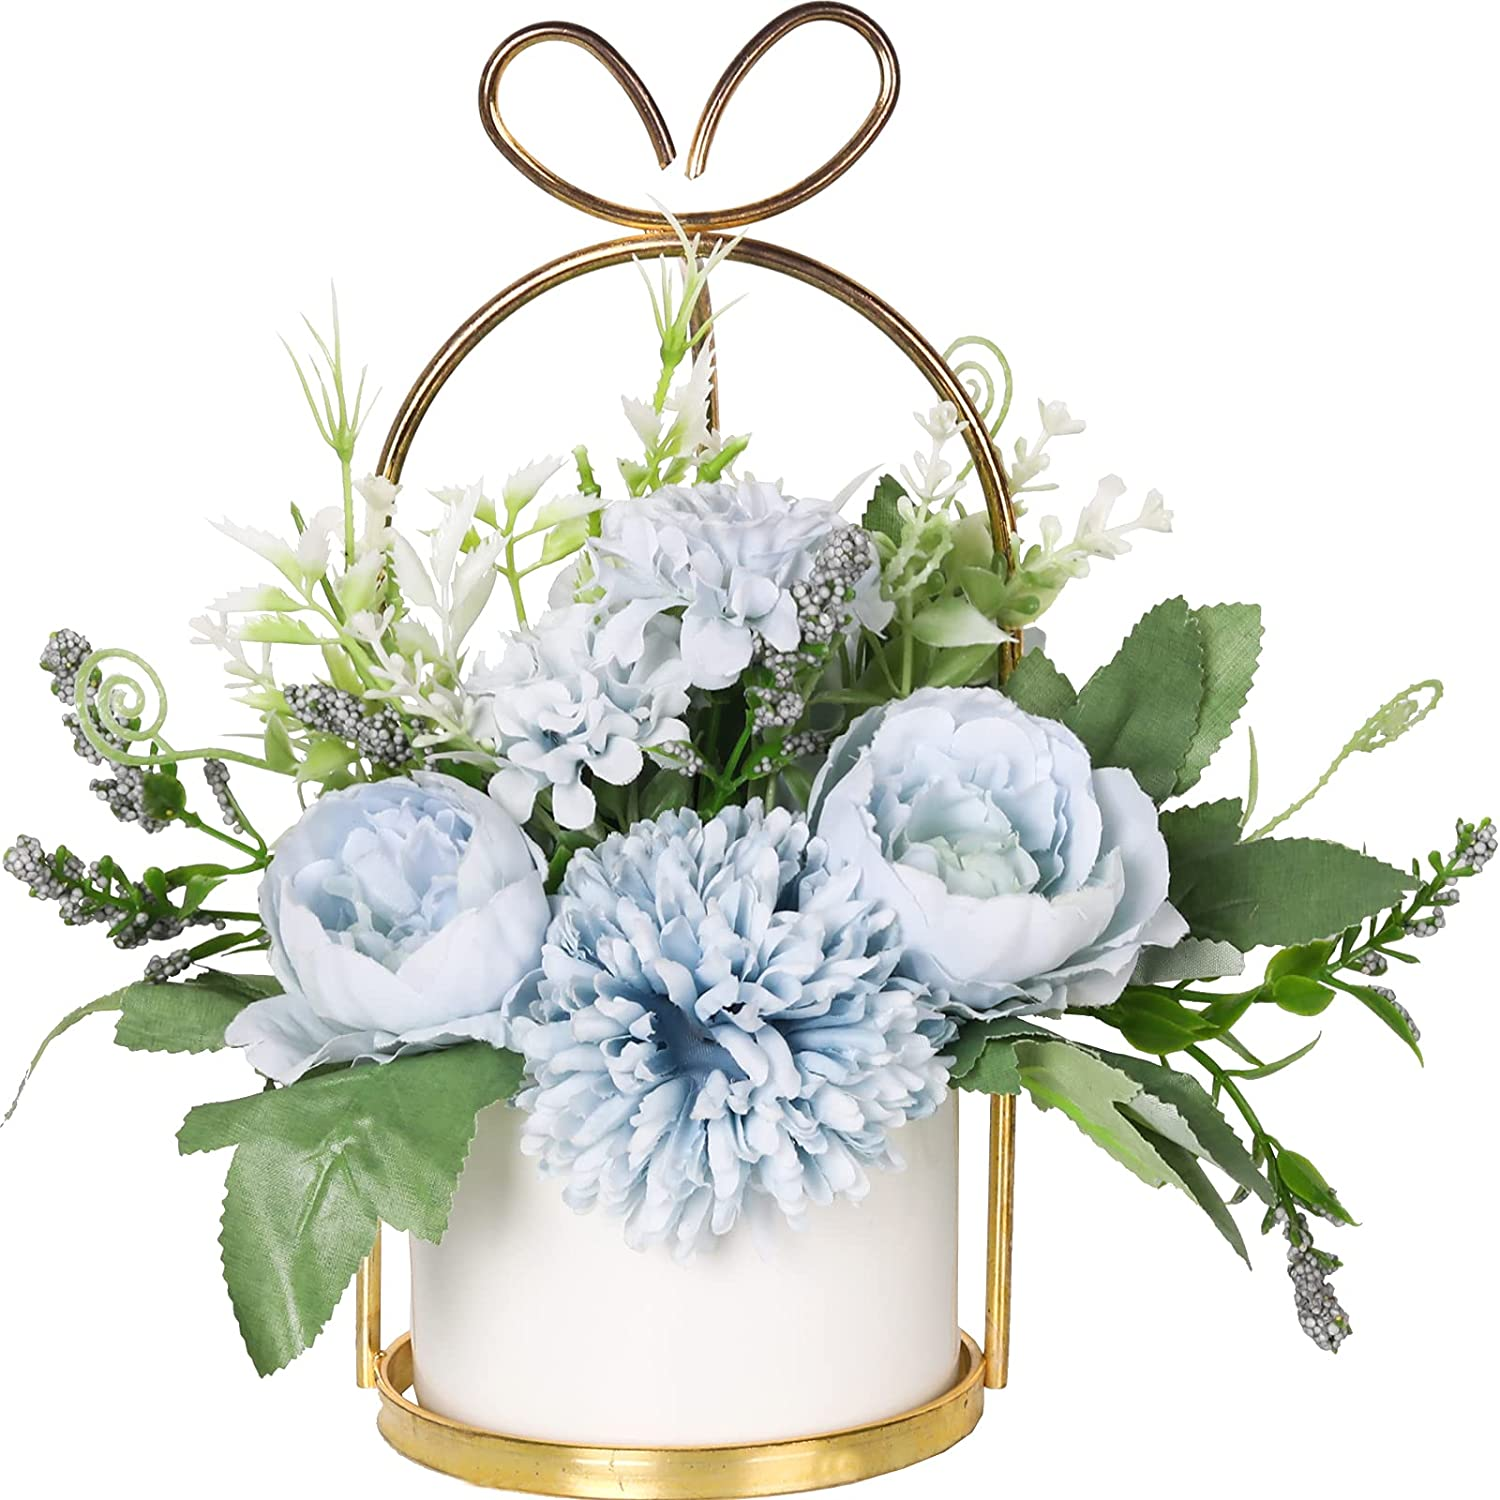 Nubry Artificial Flowers with Vase Fake Peony Silk Hydrangea Faux Wildflowers Arrangements in Vase for House Table Office Desk Decor (Blue)